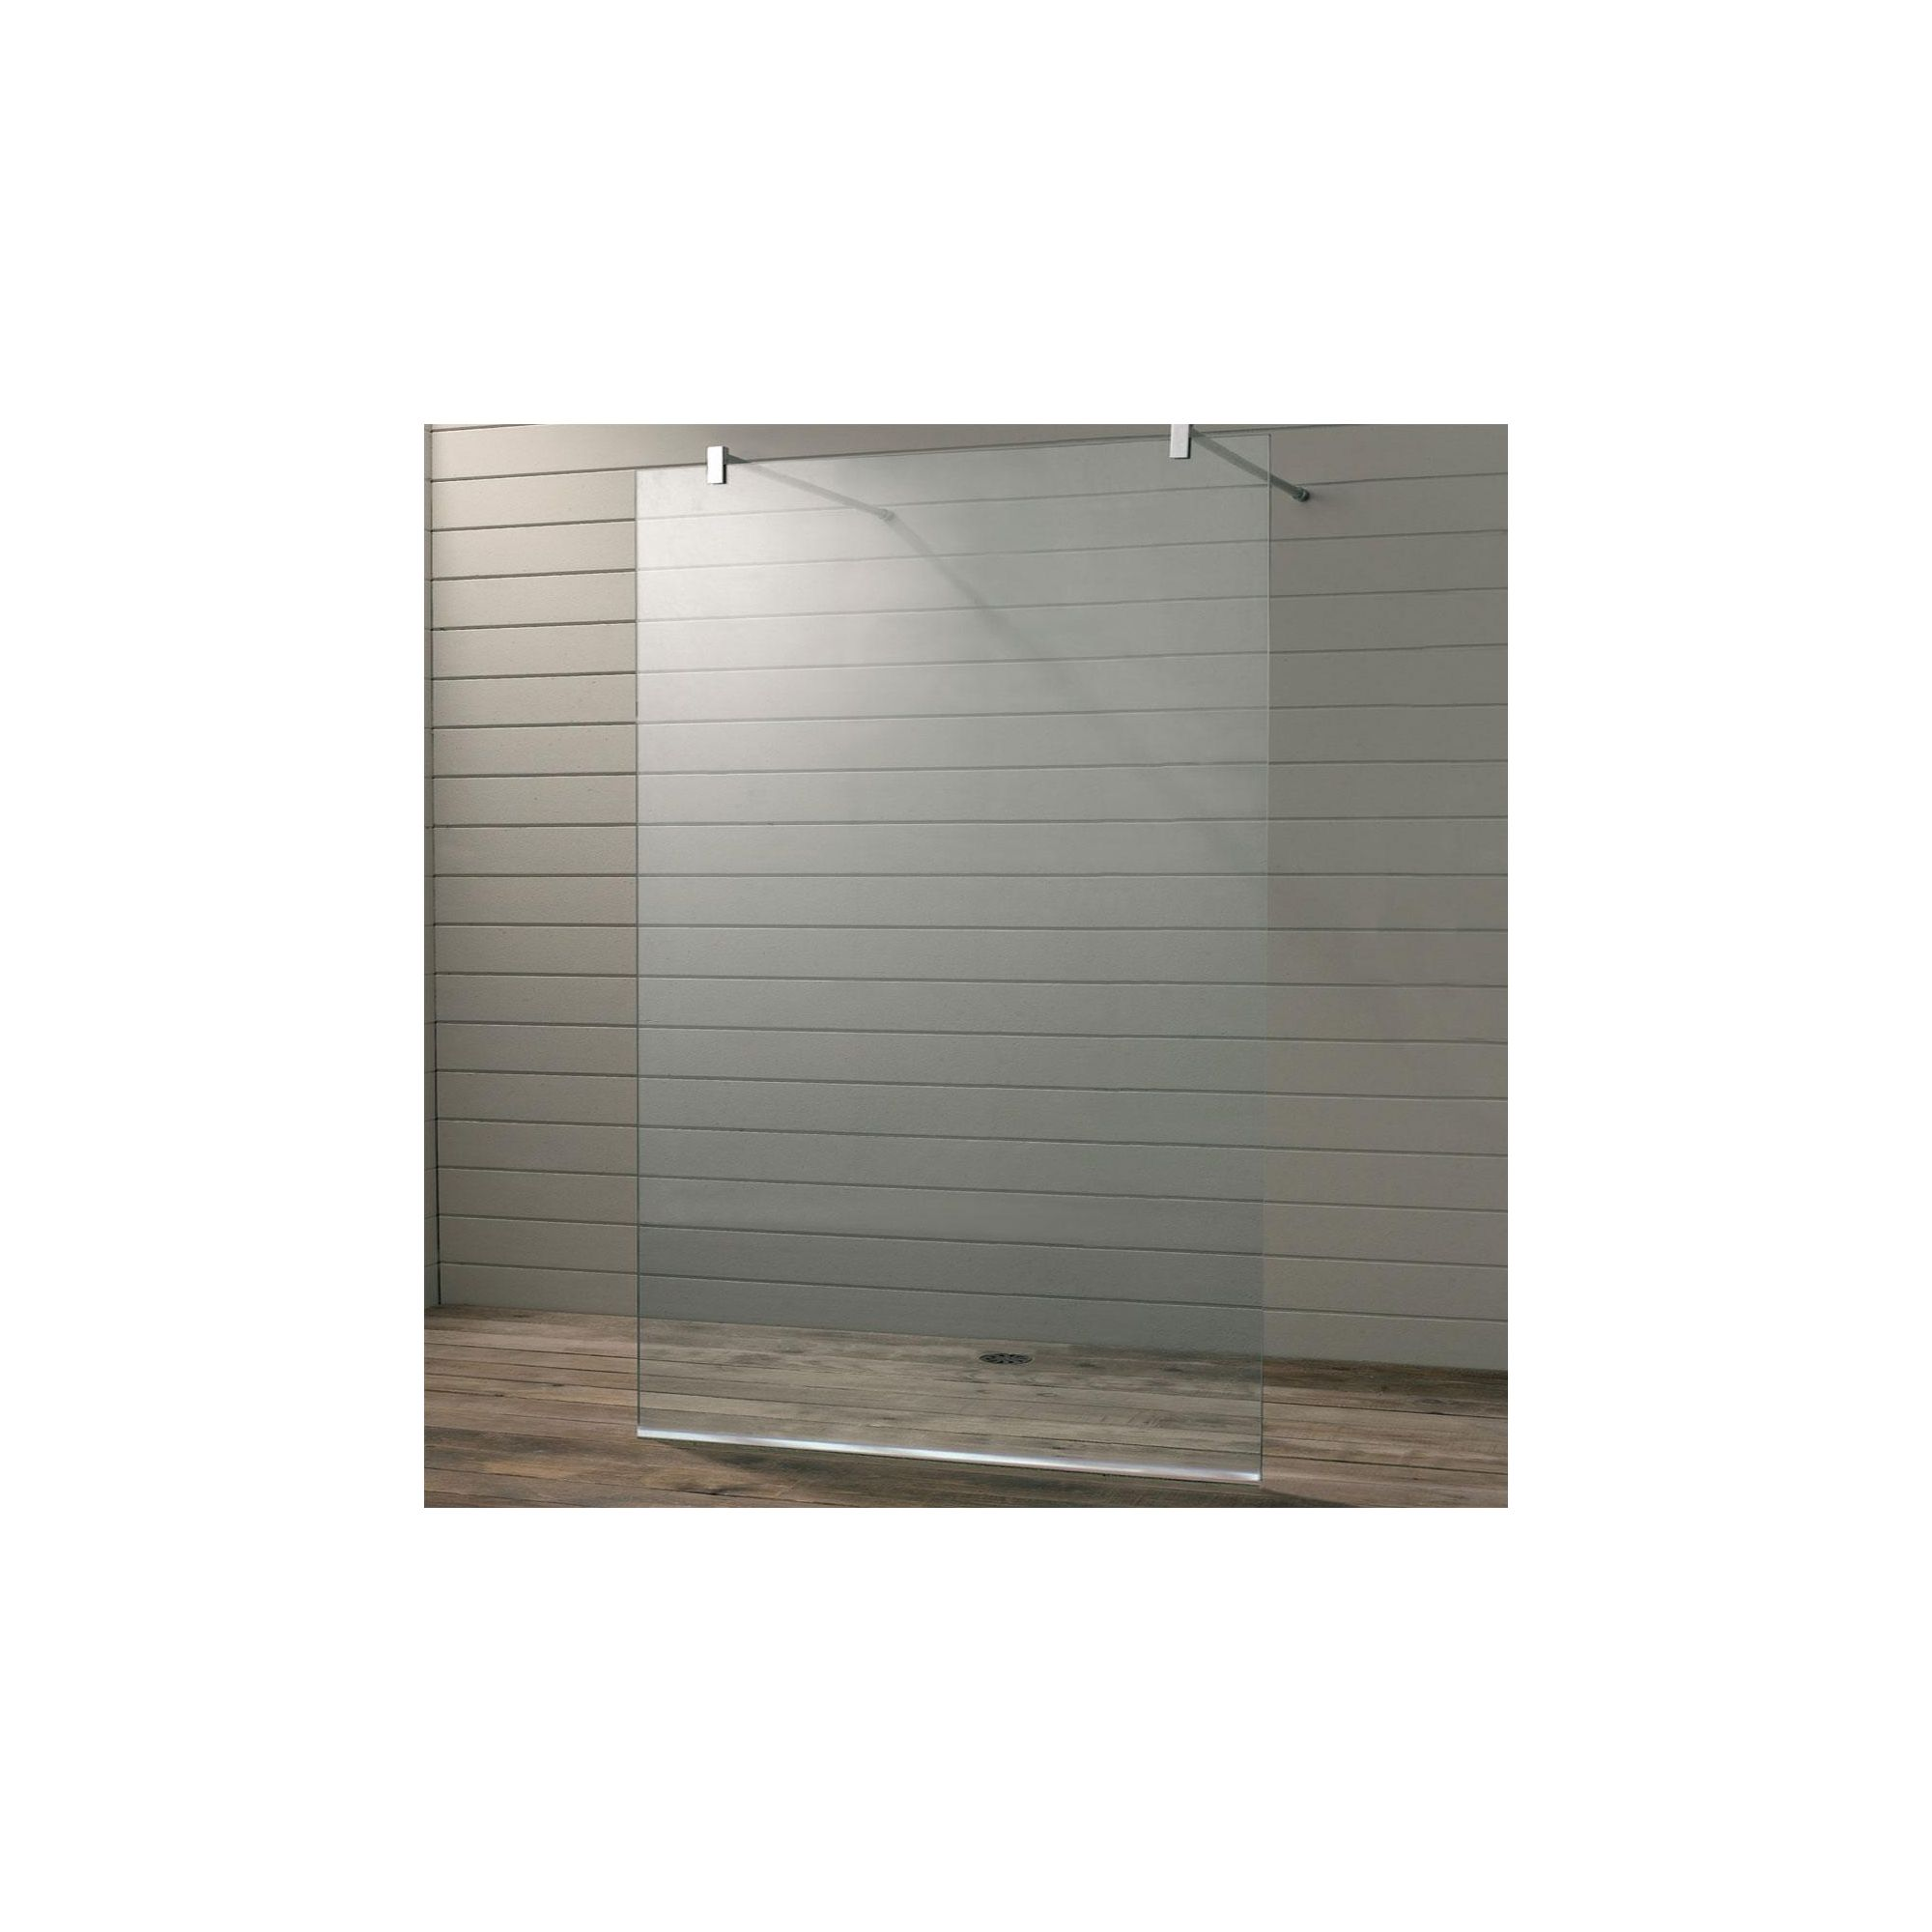 Duchy Premium Wet Room Glass Shower Panel, 900mm x 900mm, 10mm Glass, Low Profile Tray at Tesco Direct